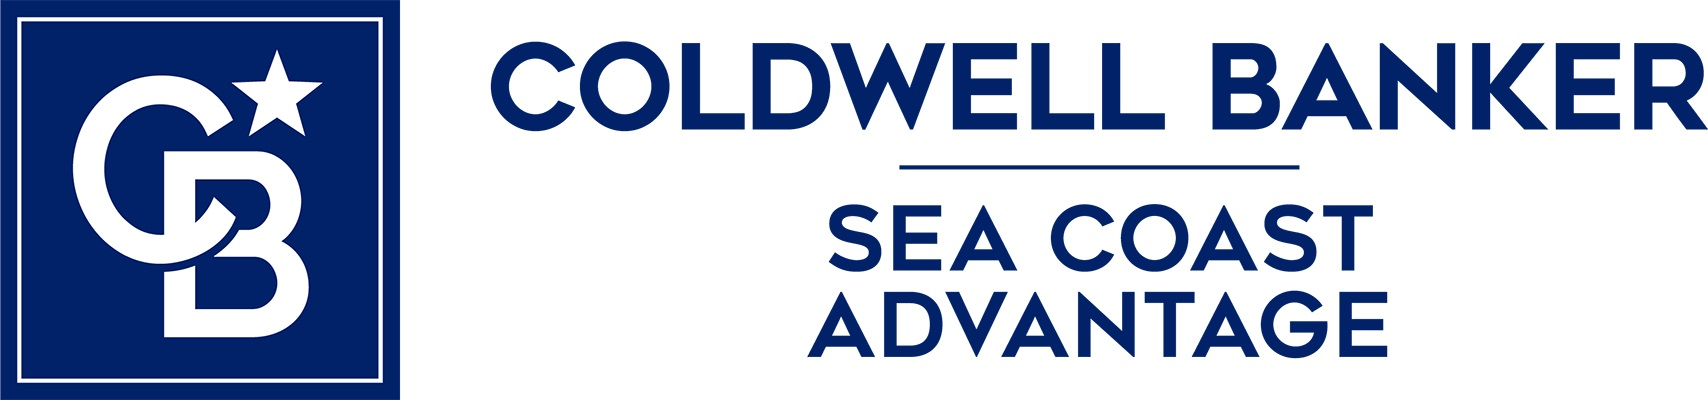 Lori Smith Homes - Coldwell Banker Sea Coast Advantage